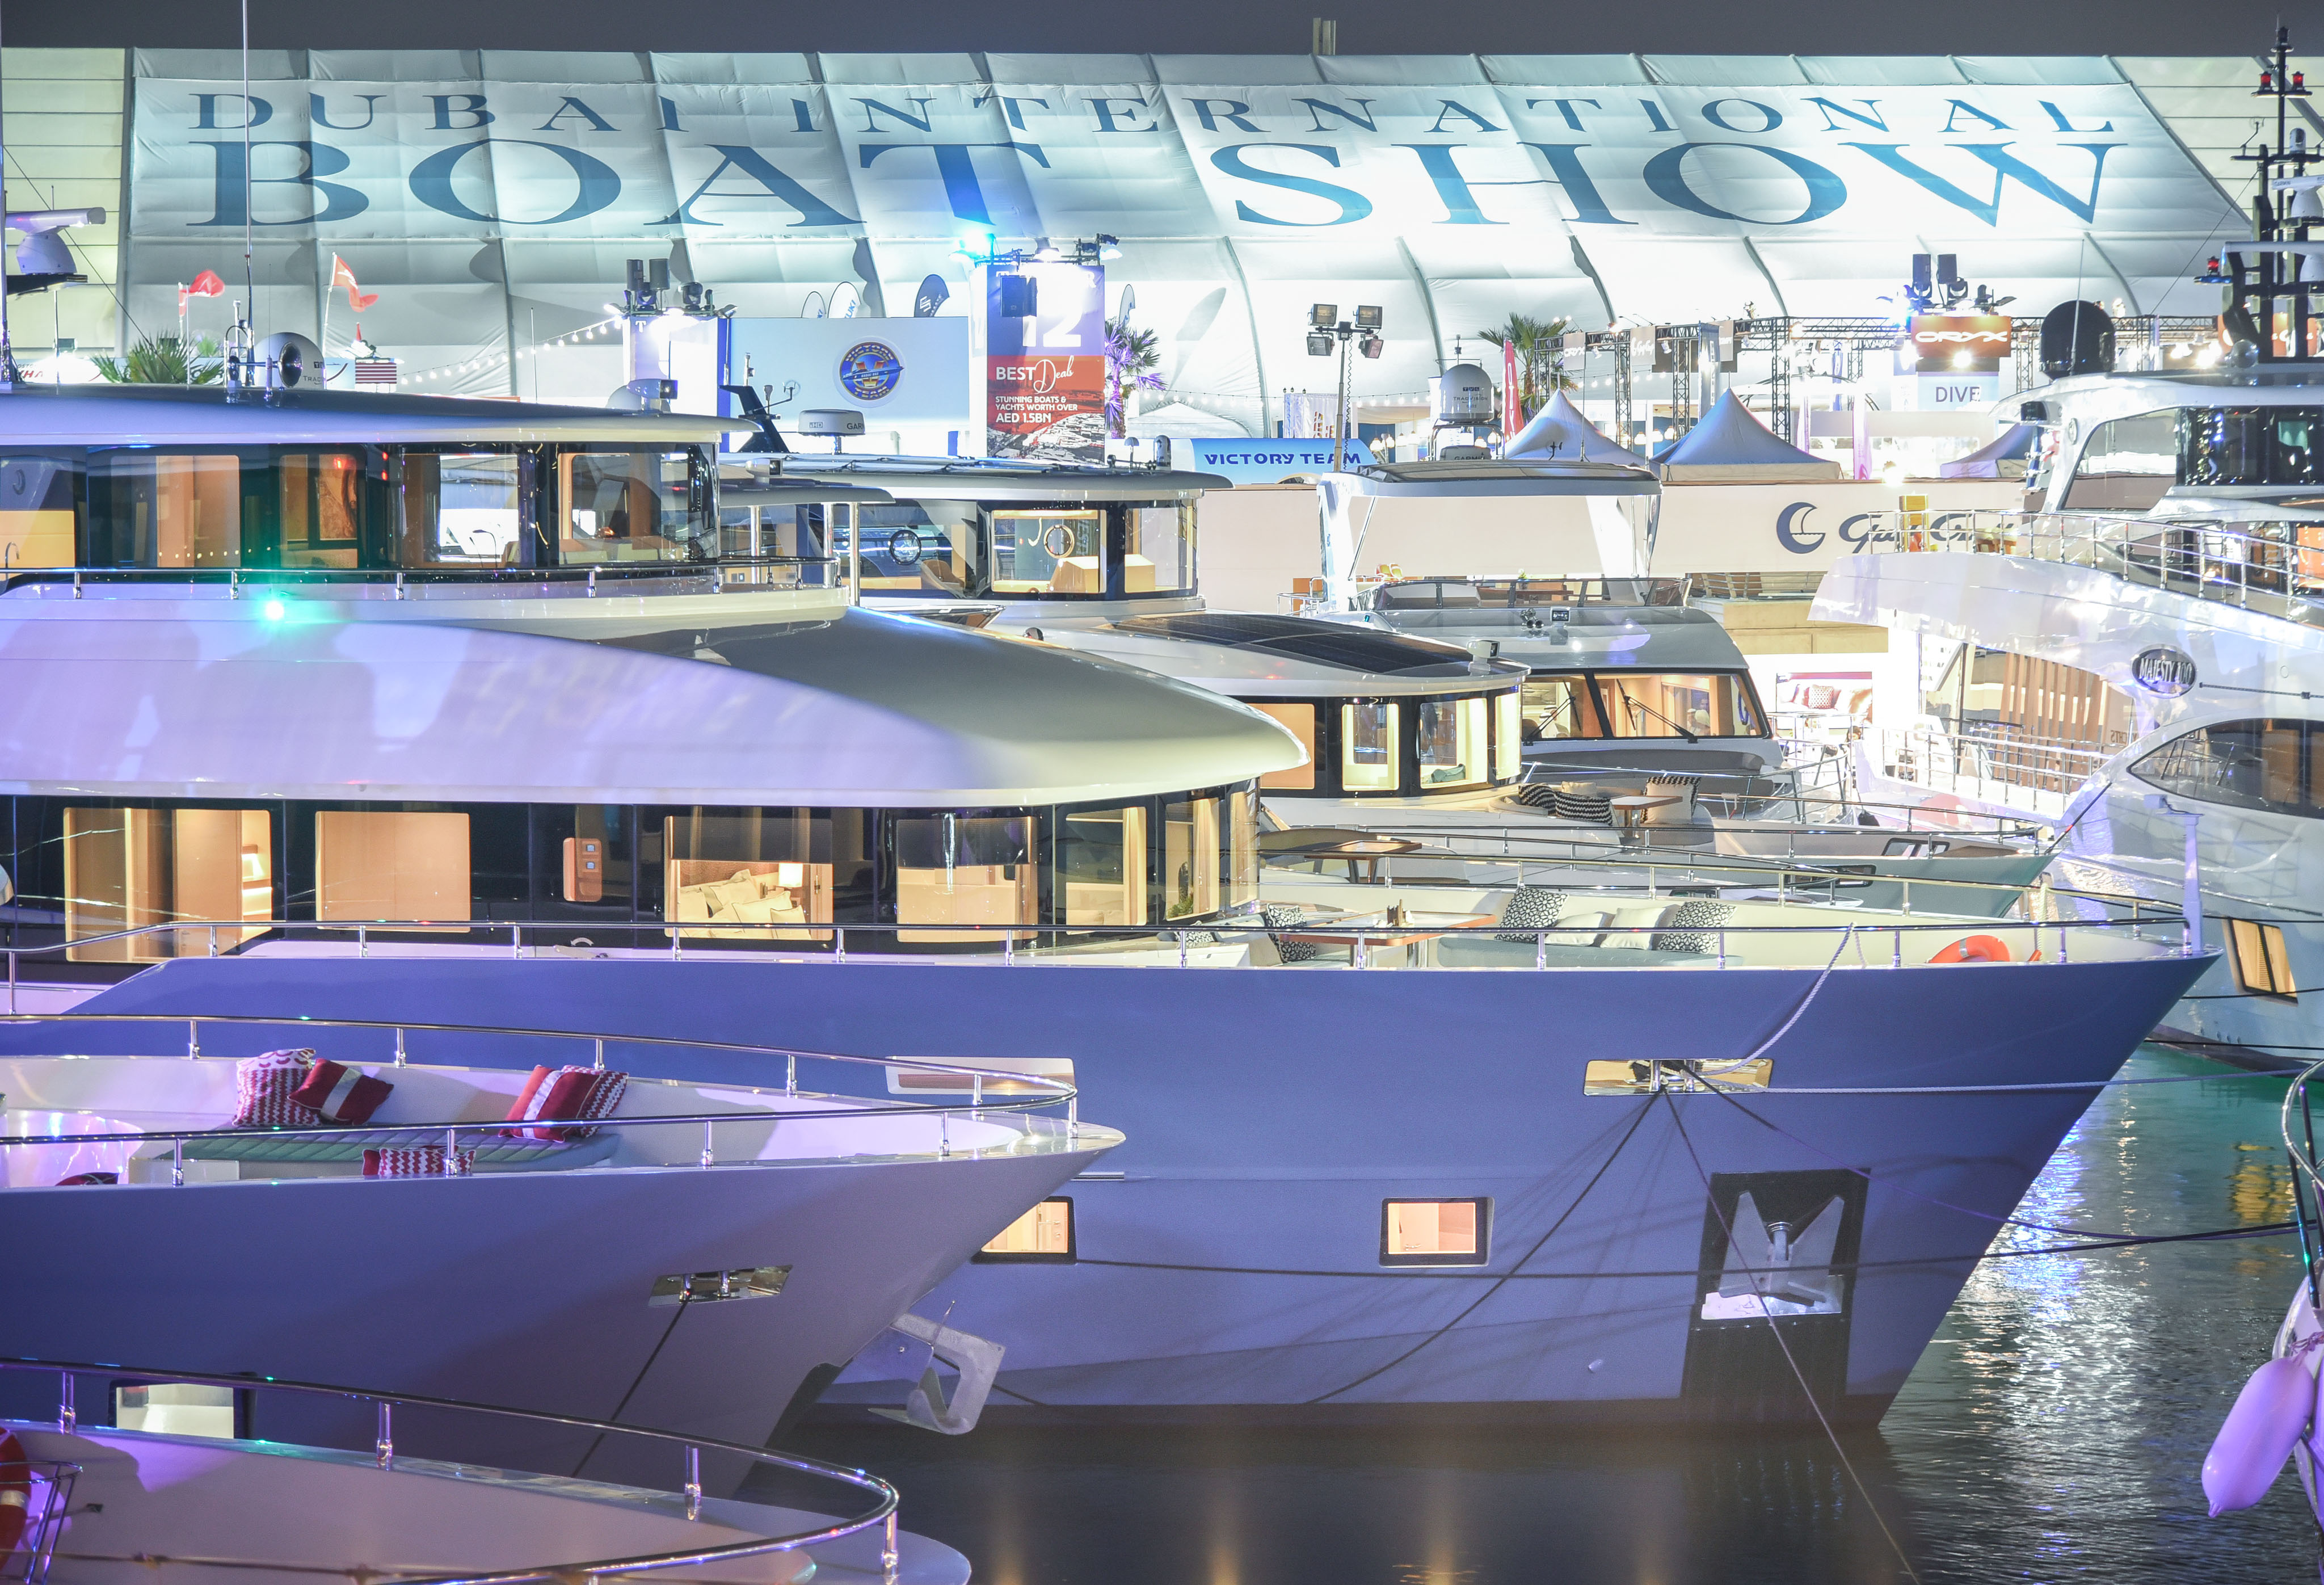 Gulf Craft at the Dubai International Boat Show 2019 (8)